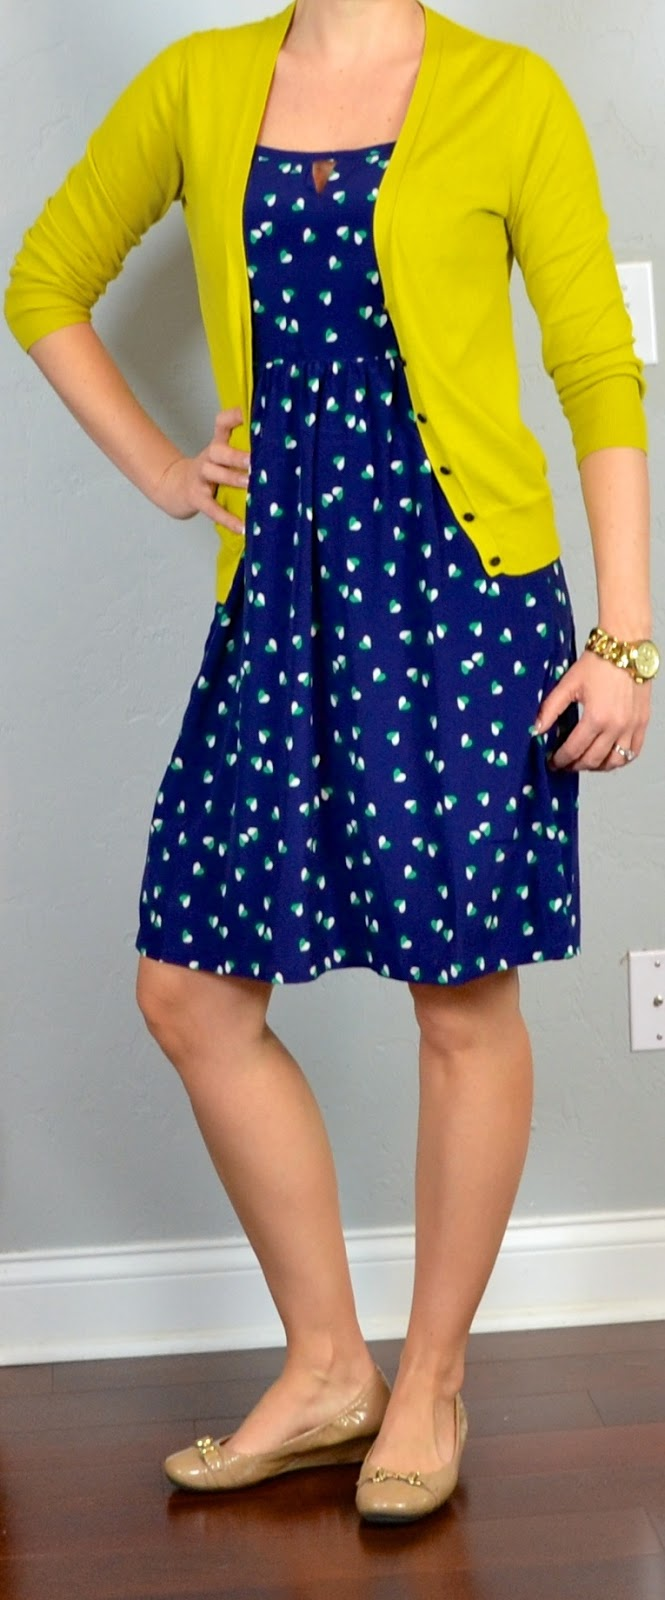 outfit post: navy & white polka dot dress, nude heels